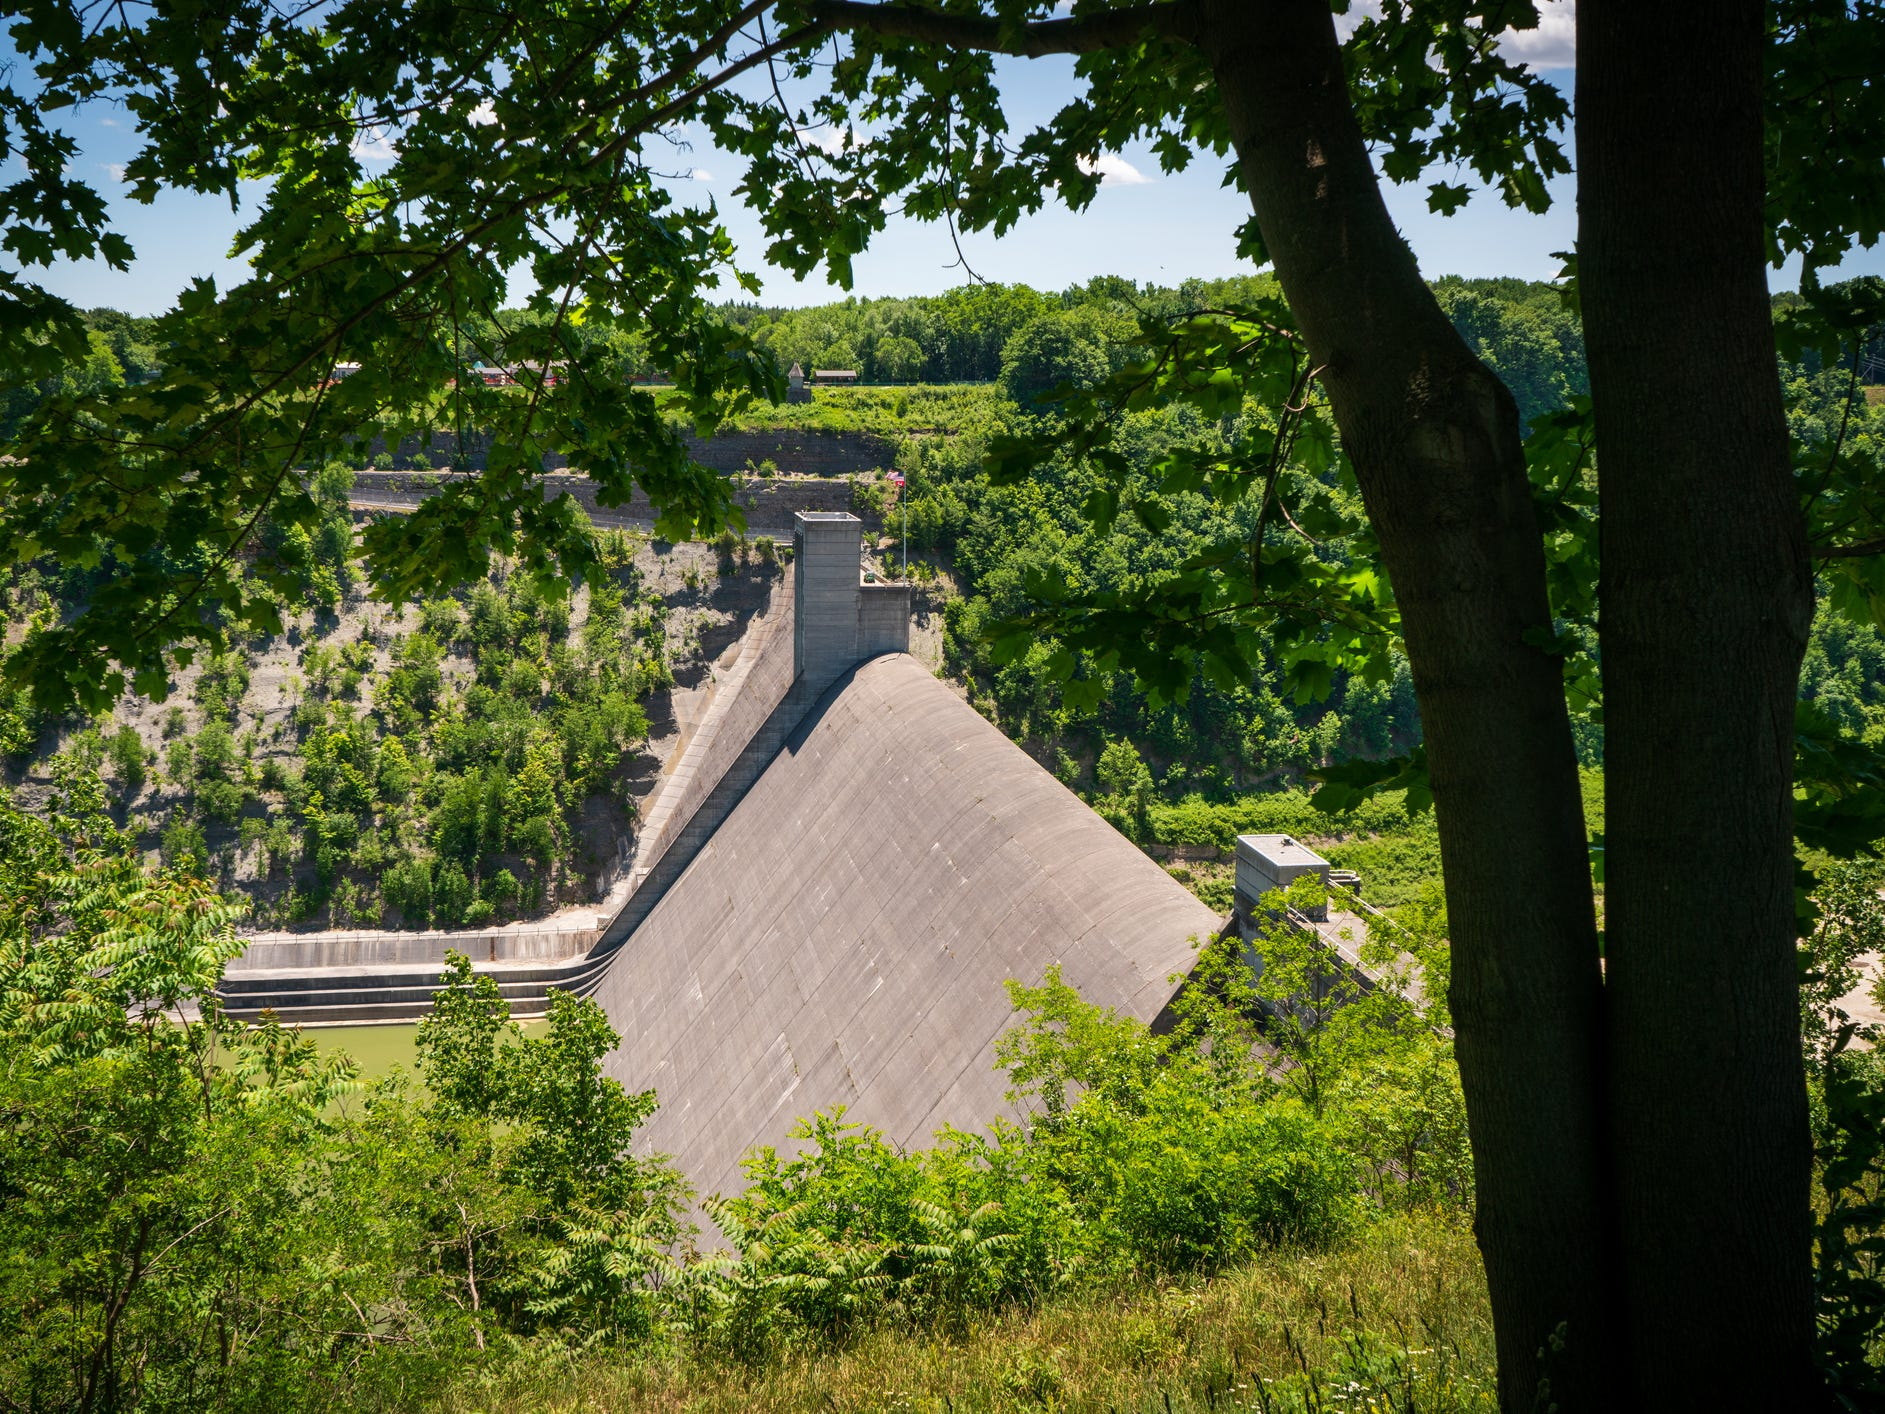 Mount Morris Dam in New York.